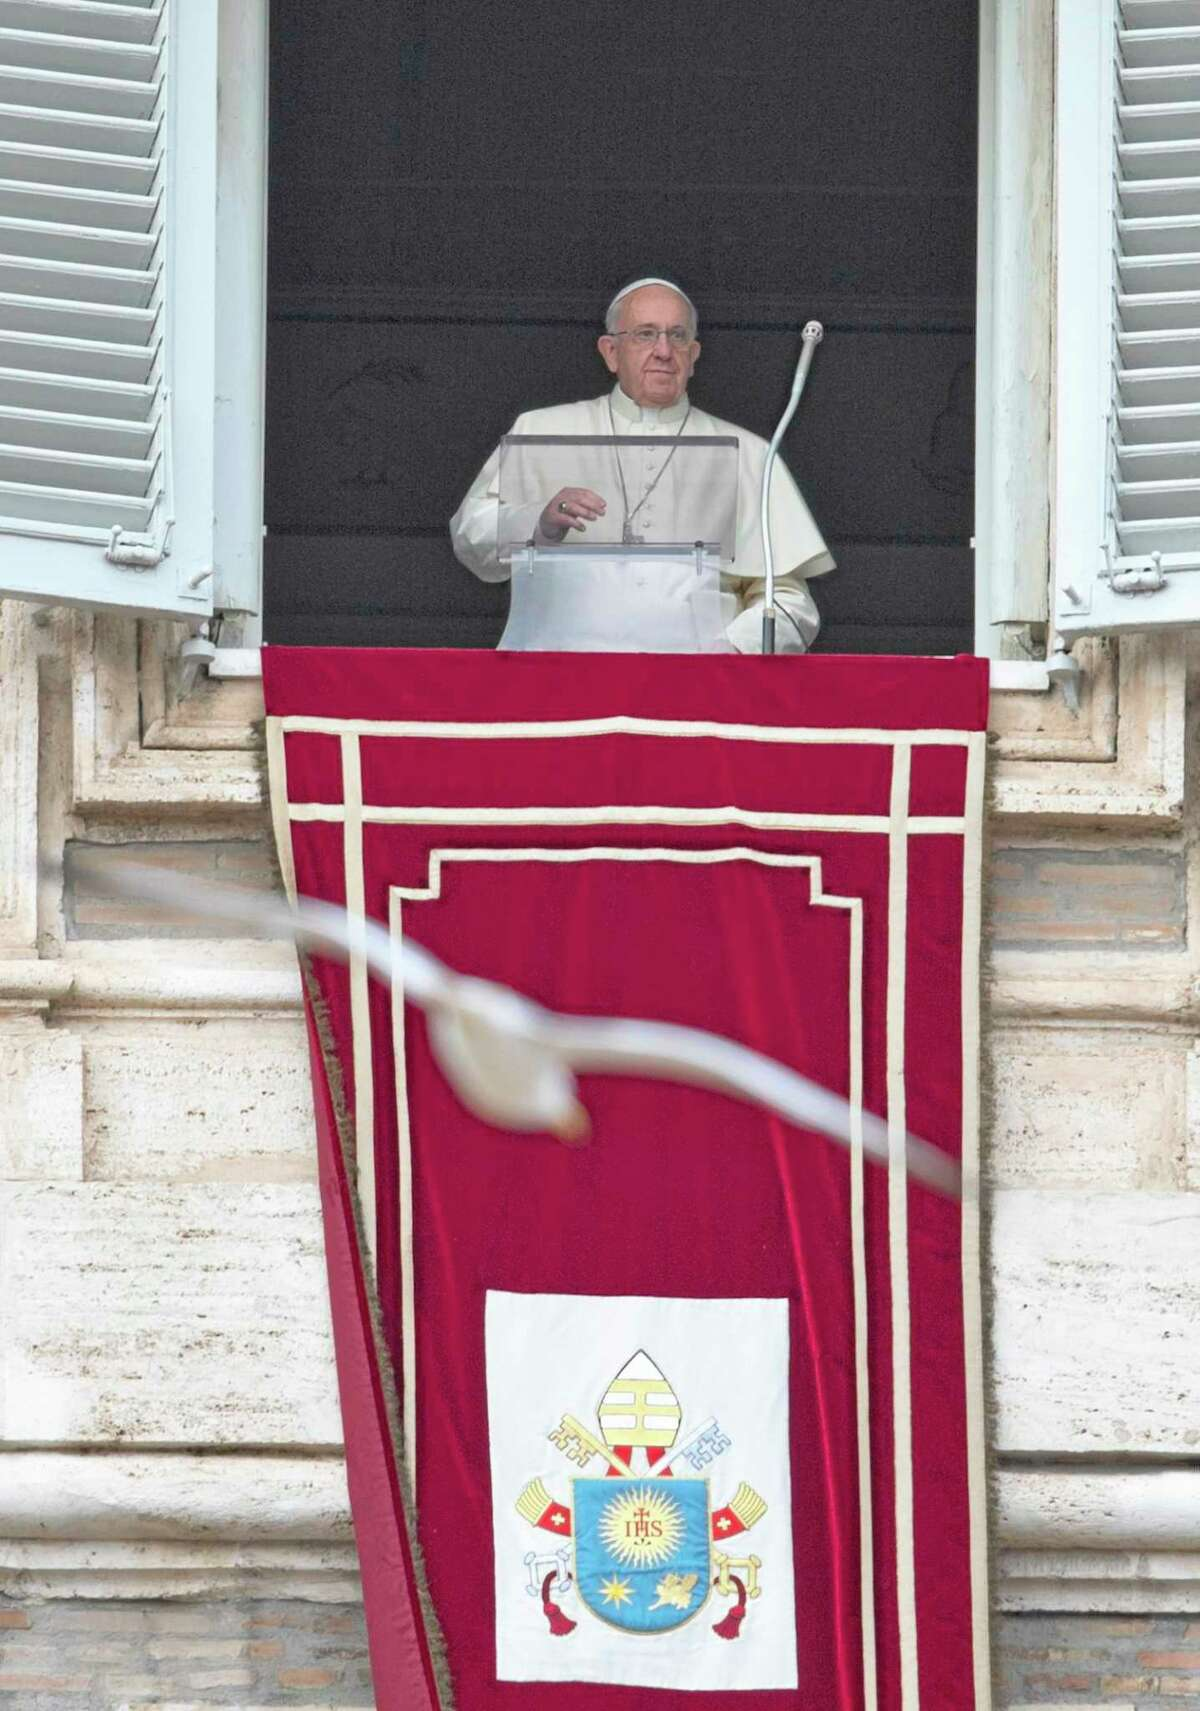 A seagull flies past pope Francis as he arrives for the Angelus noon prayer he celebrates from the window of his studio overlooking St. Peter's Square at the Vatican, Sunday, Jan. 5, 2014. Pope Francis announced Sunday that he would travel to Israel, the West Bank and Jordan on May 24-26, his first visit to the Holy Land and one that comes amid a new U.S. push for peace between Israel and the Palestinians. (AP Photo/Alessandra Tarantino)